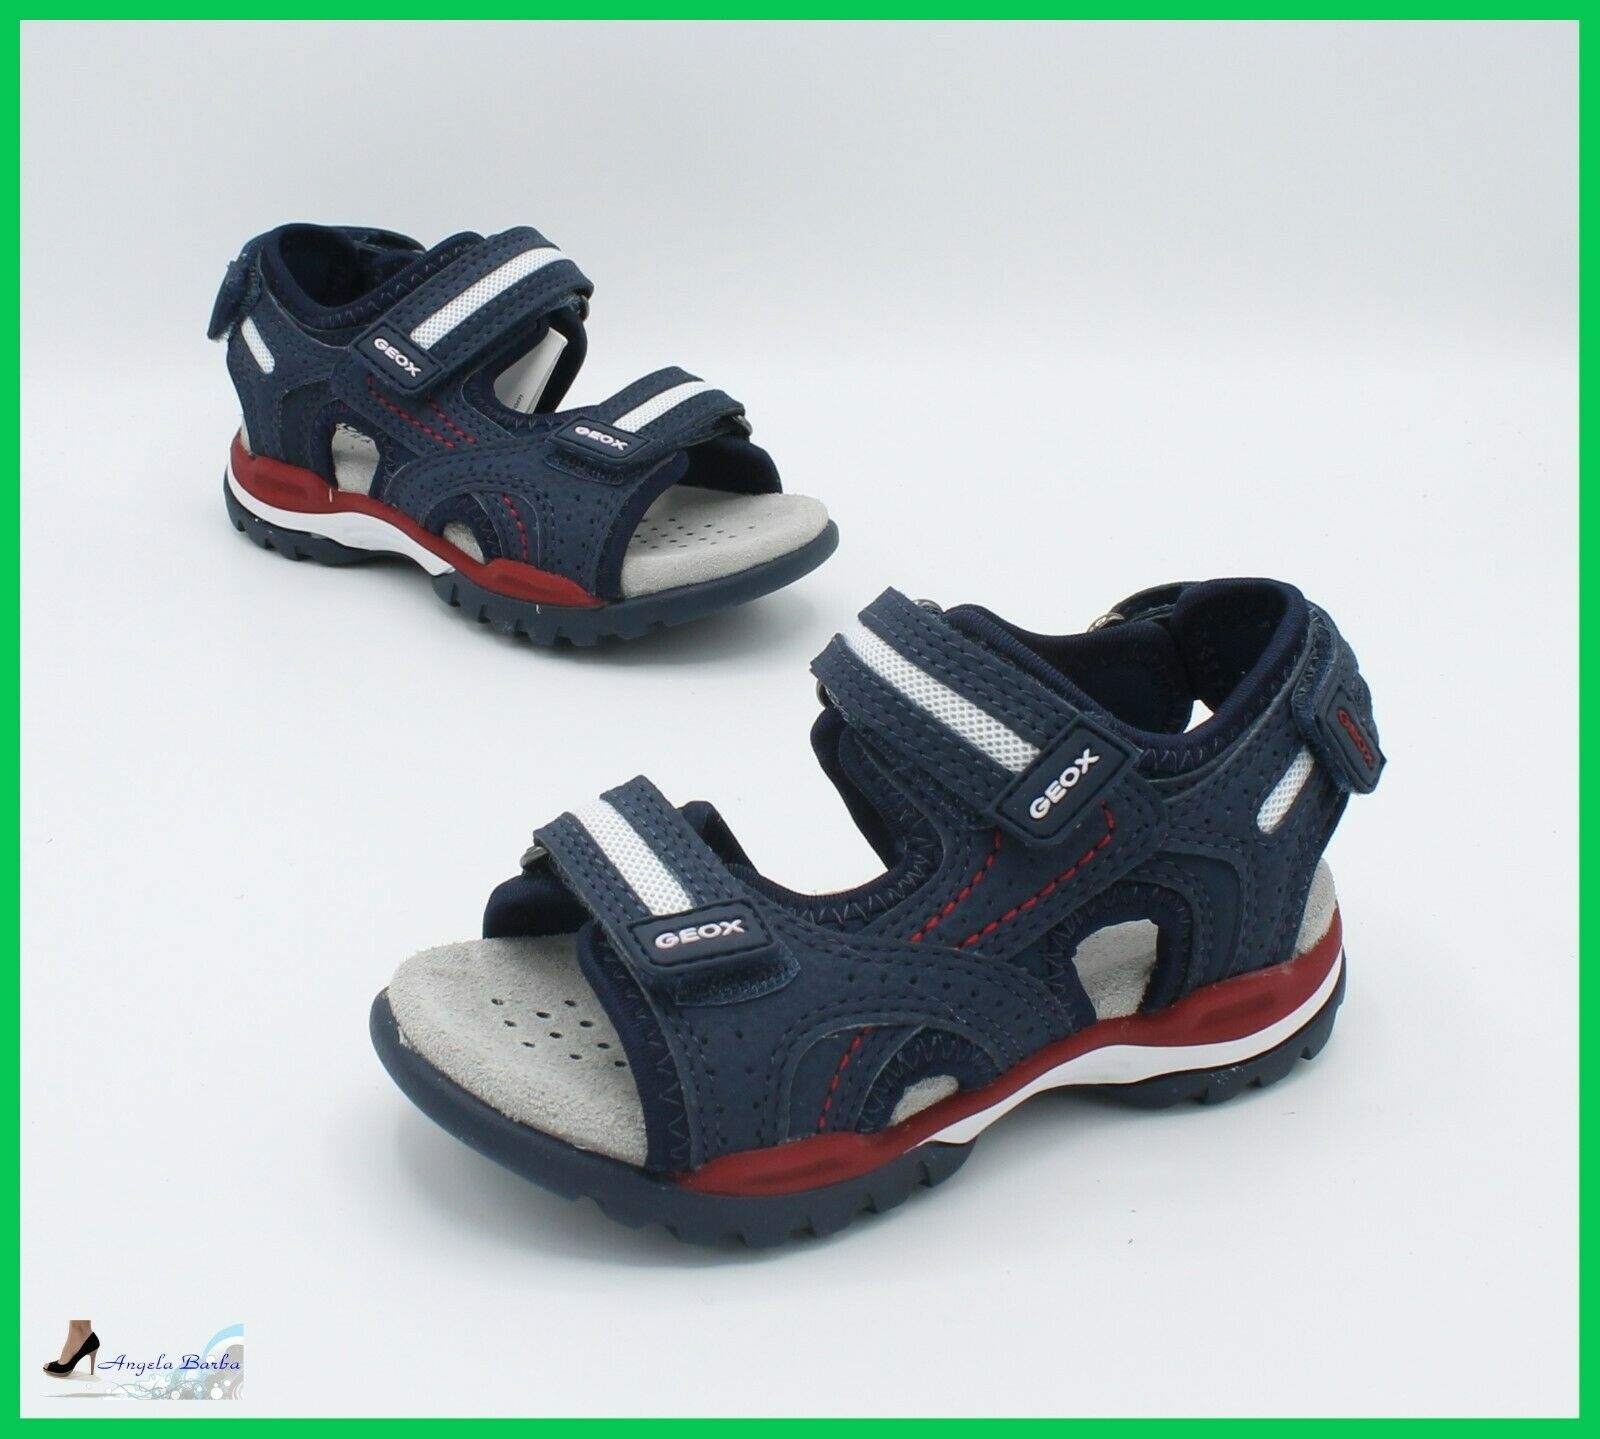 Sandals Baby Boys Geox Summer Shoes for Boy Youth Kids Sport Straps